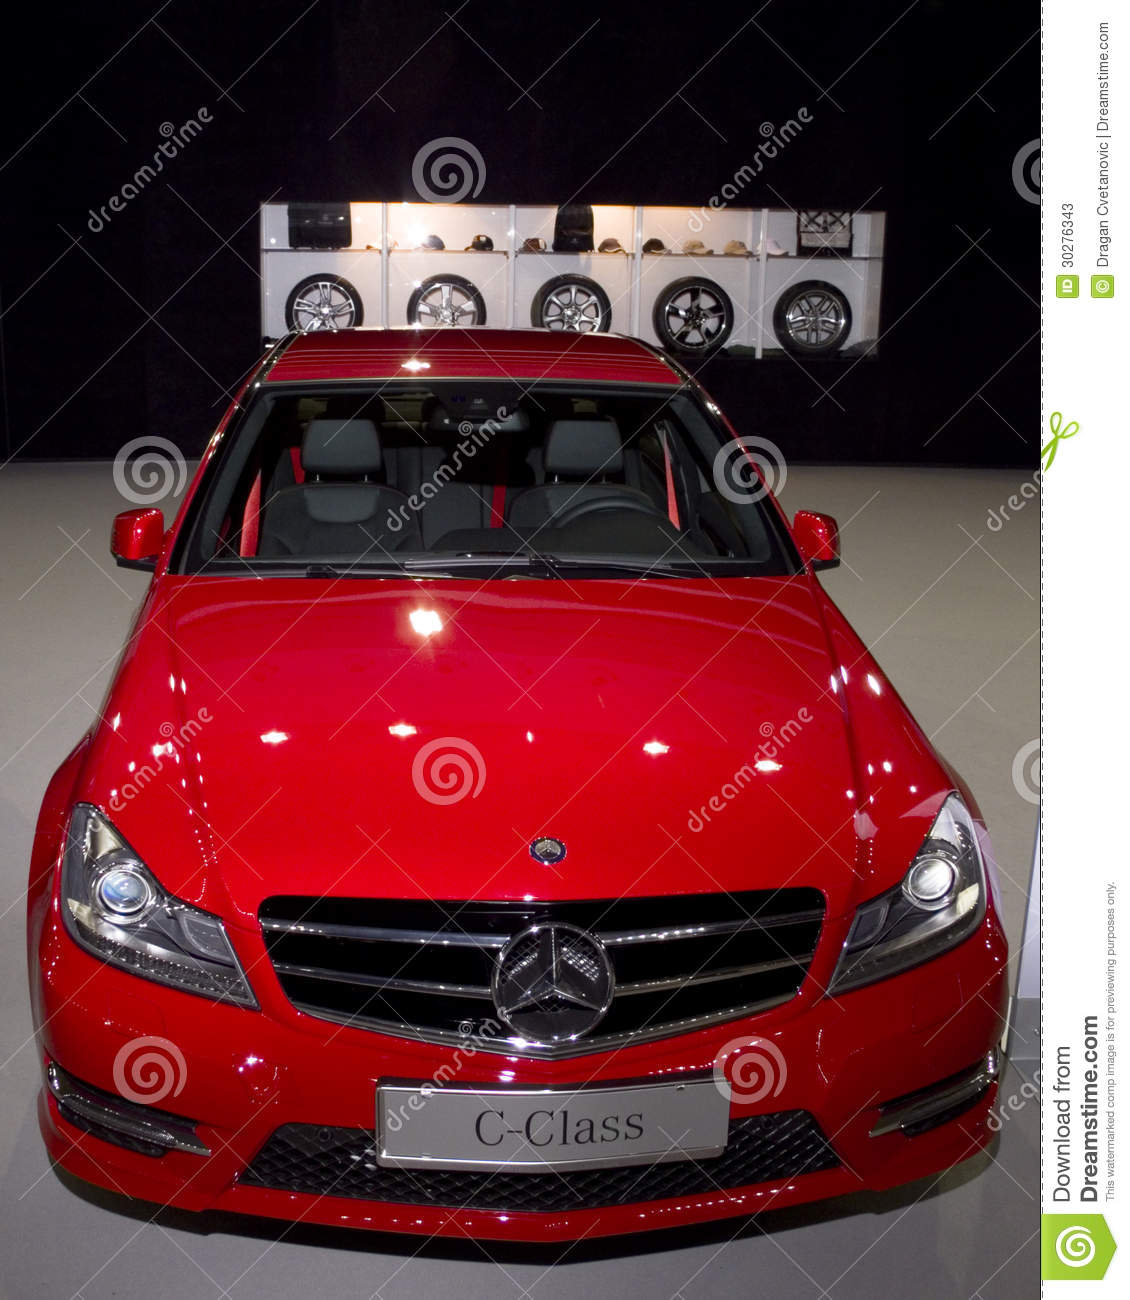 Red Car AMG Mercedes C-class Rims Options Editorial Stock